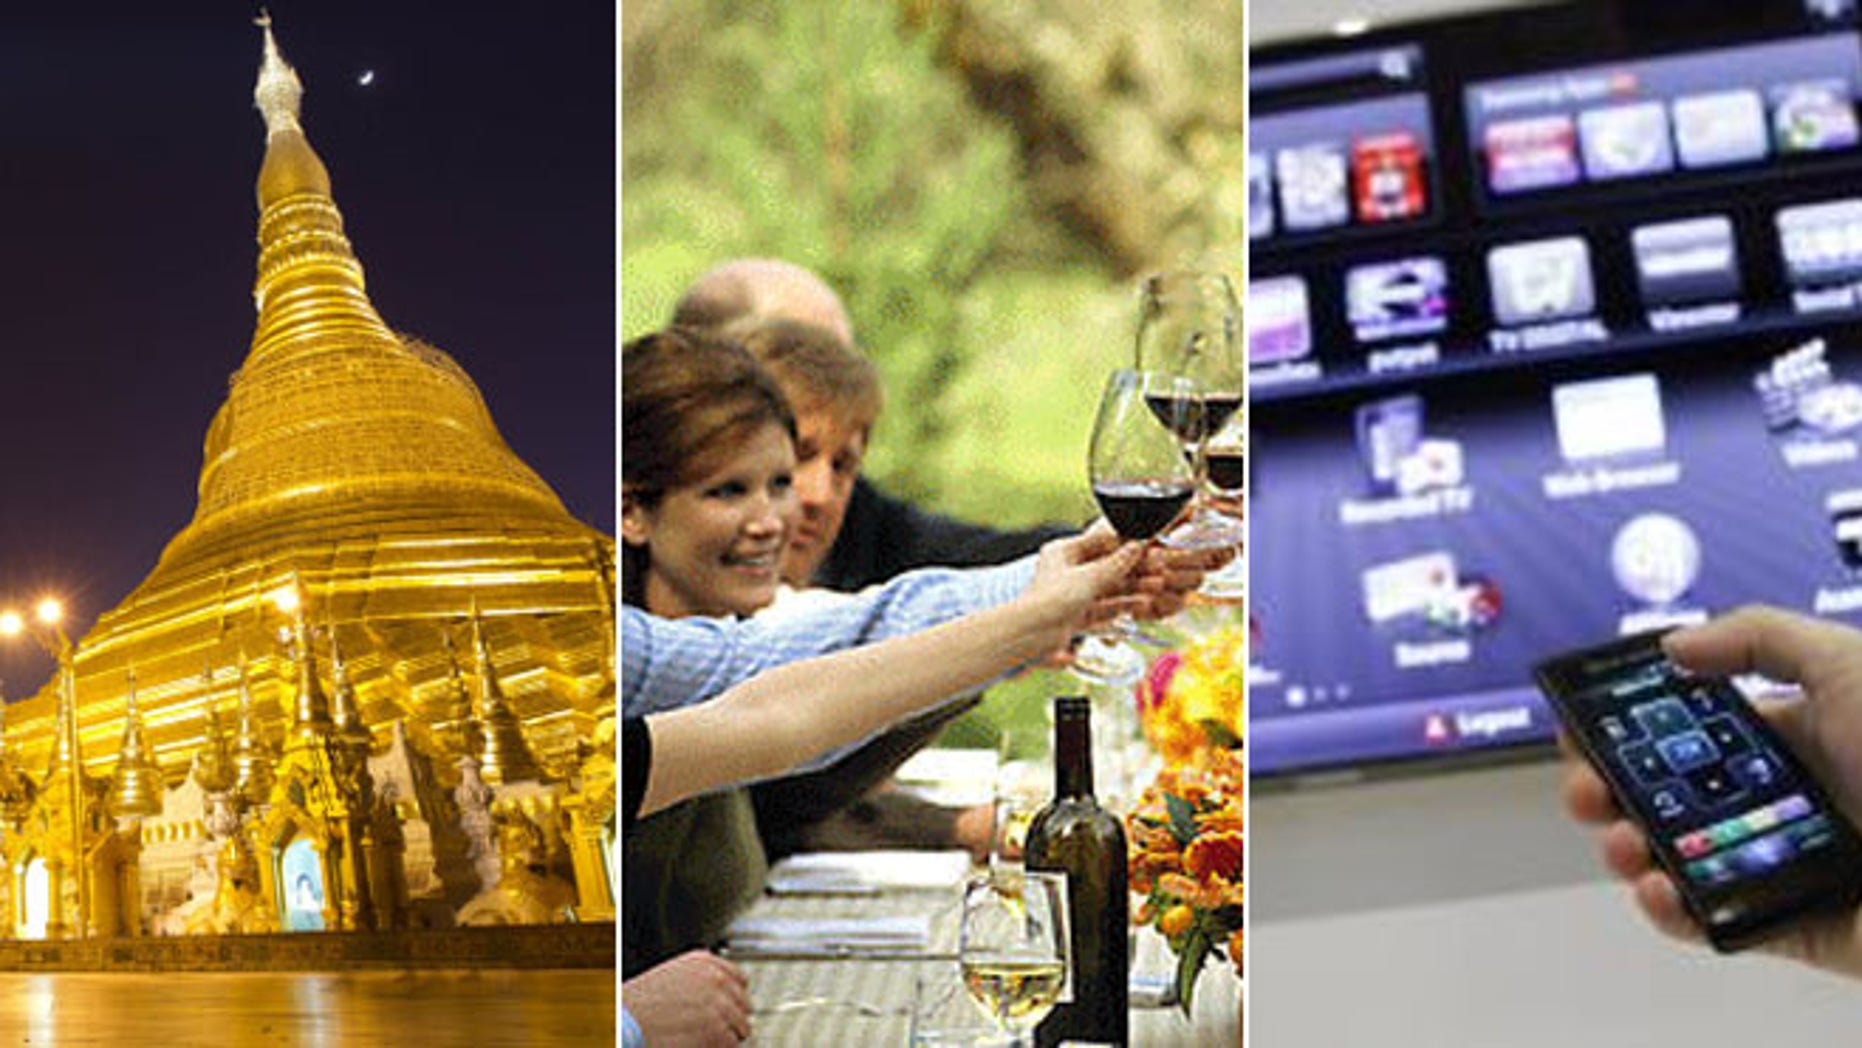 Some trends include trips to once-closed countries, such as Burma, gadget-free getaways to wine country and using smart TVs to book travel.